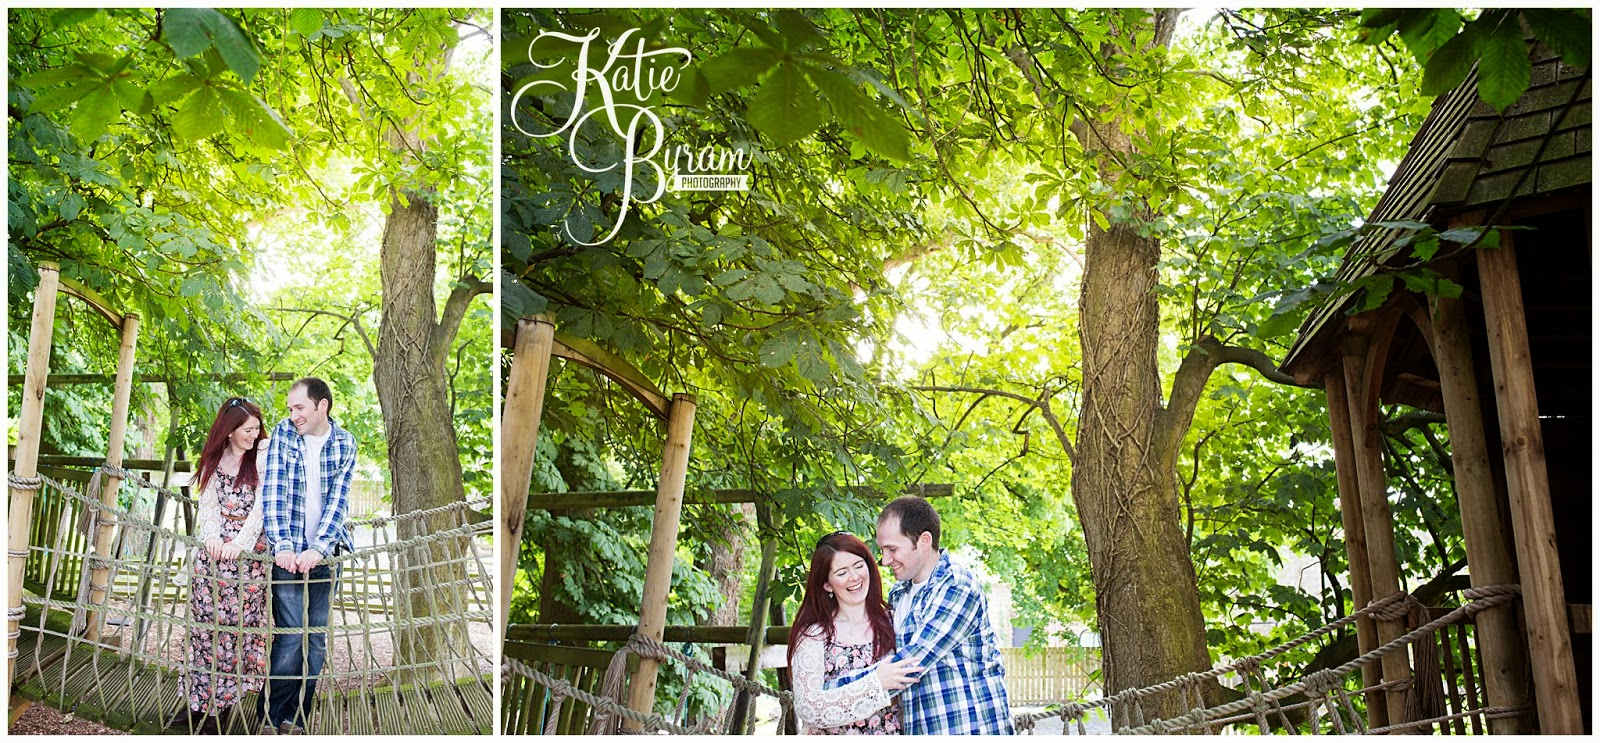 alnwick garden wedding, alnwick treehouse wedding, katie byram photography, ellingham hall, ellingham wedding, northumberland wedding venue, north east wedding venue, pre-wedding shoot